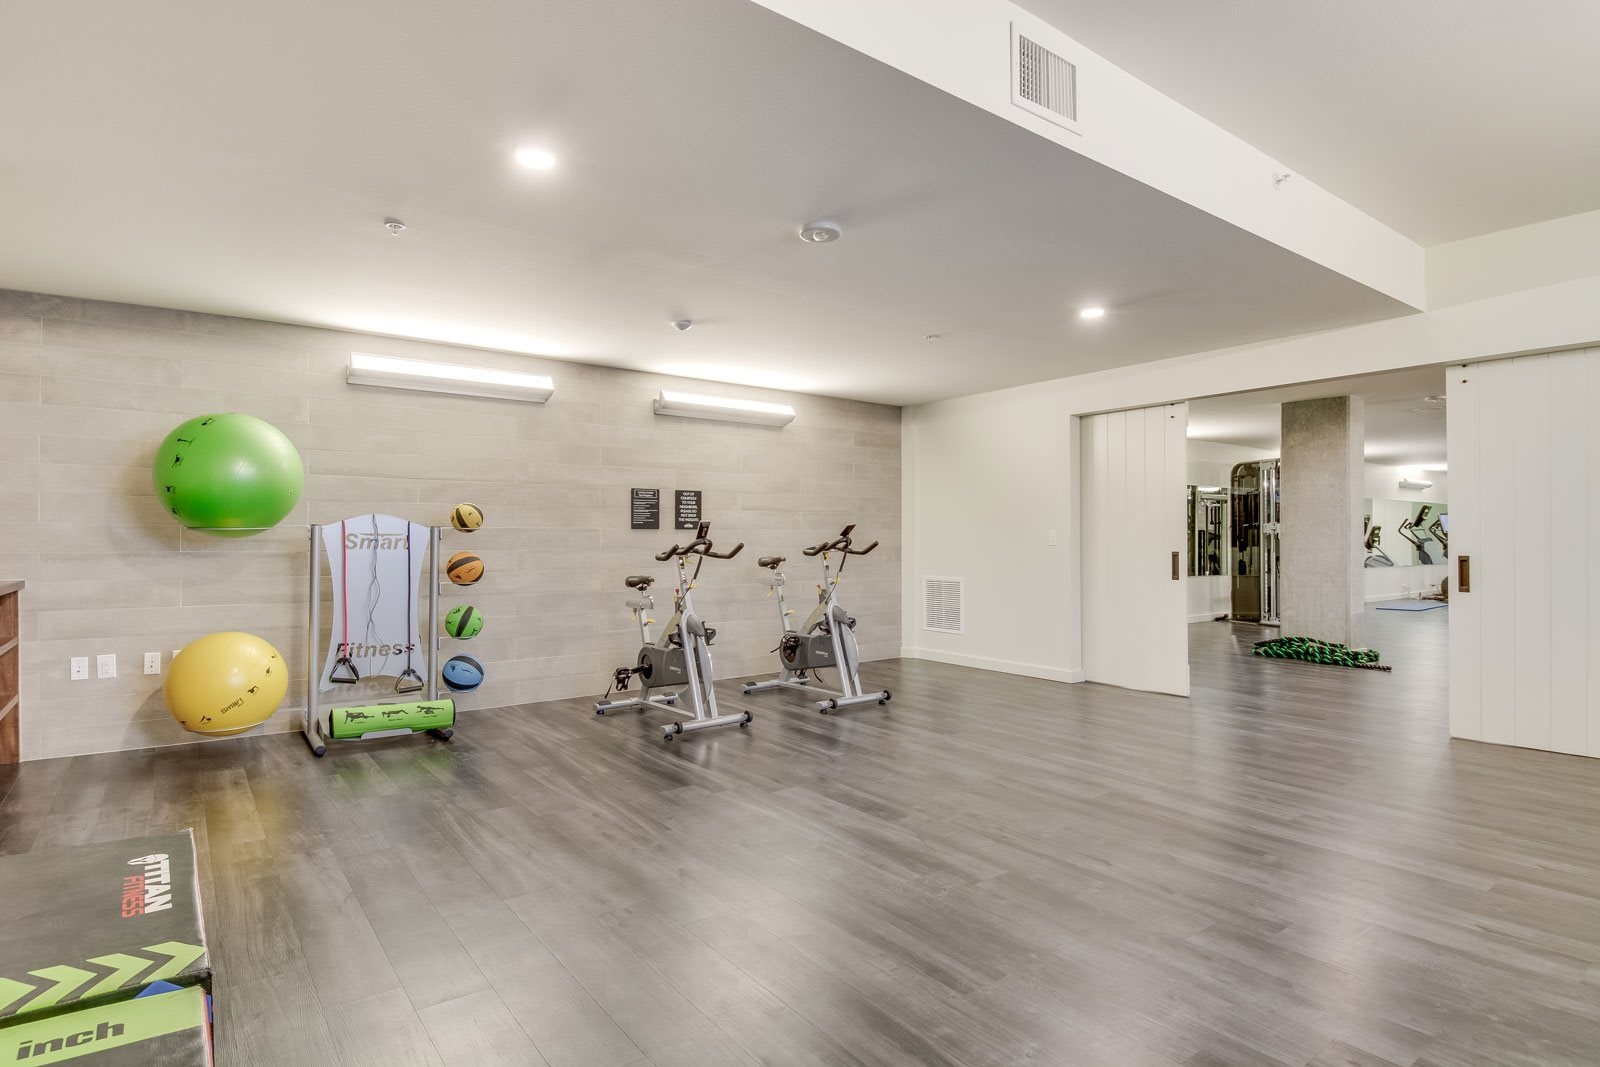 Private Yoga Room Available at The Whittaker, 4755 Fauntleroy Way, Seattle